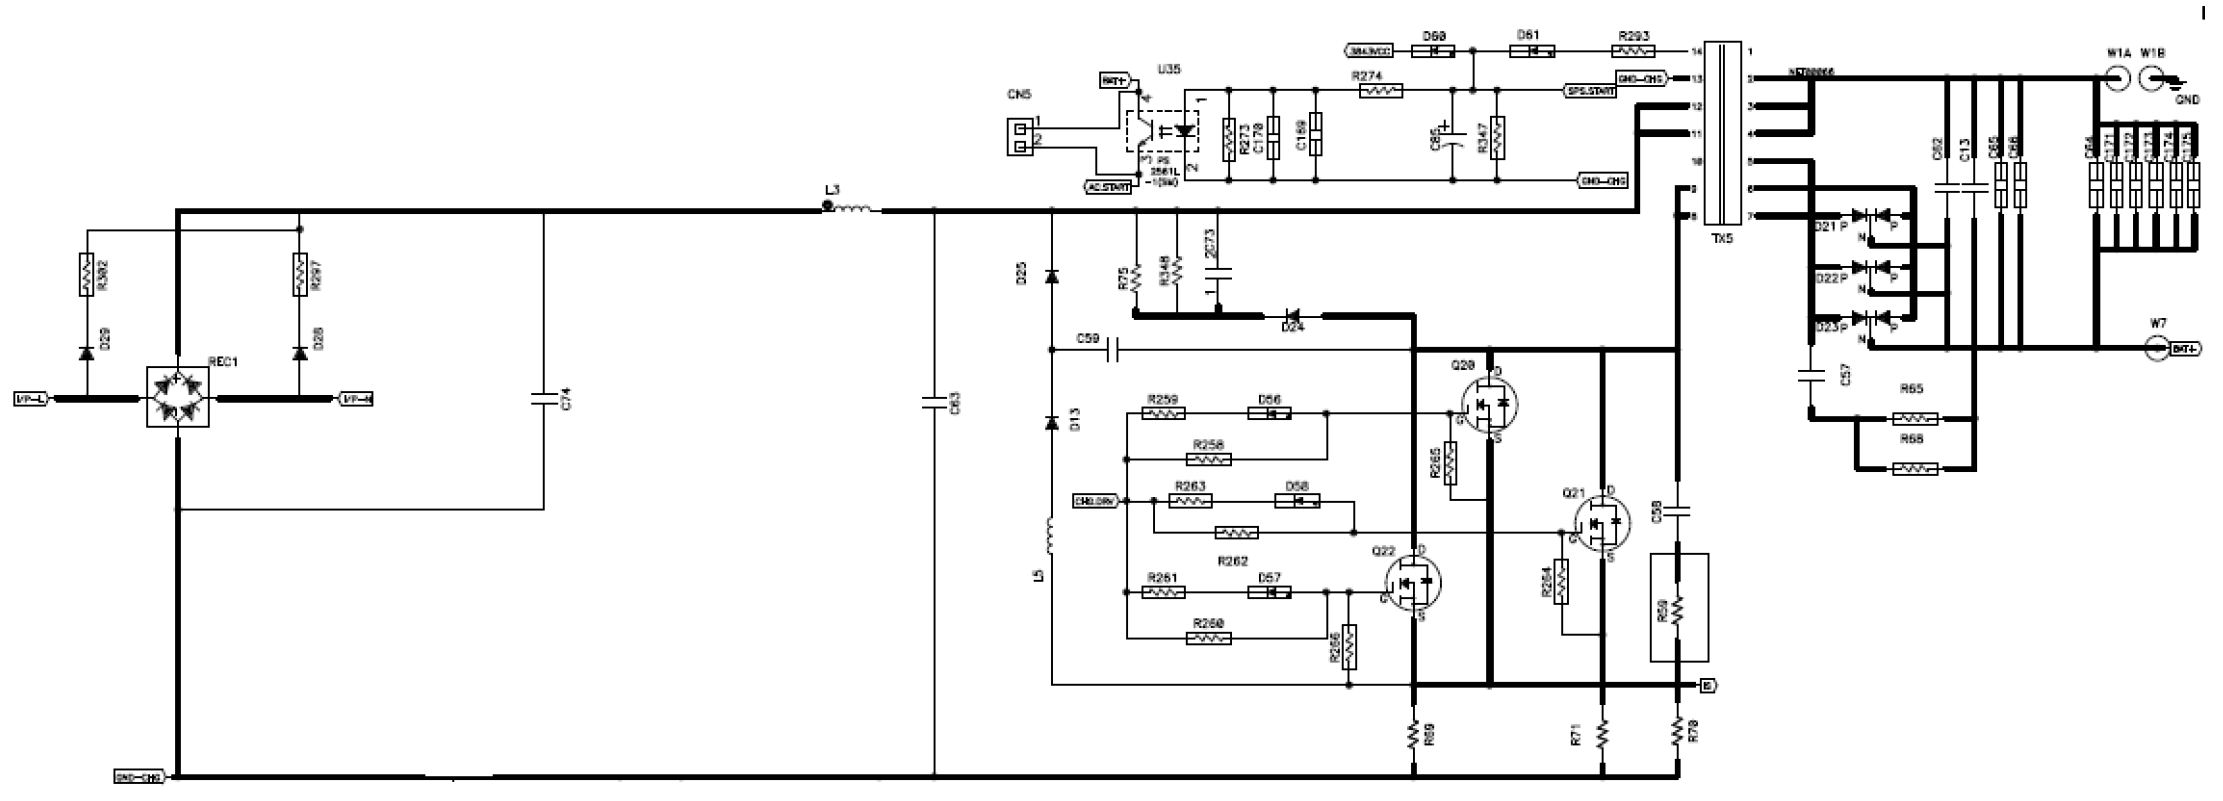 circuit diagram  u0026 help needed repairing alfa p-3000  24 off-grid inverter - inverters